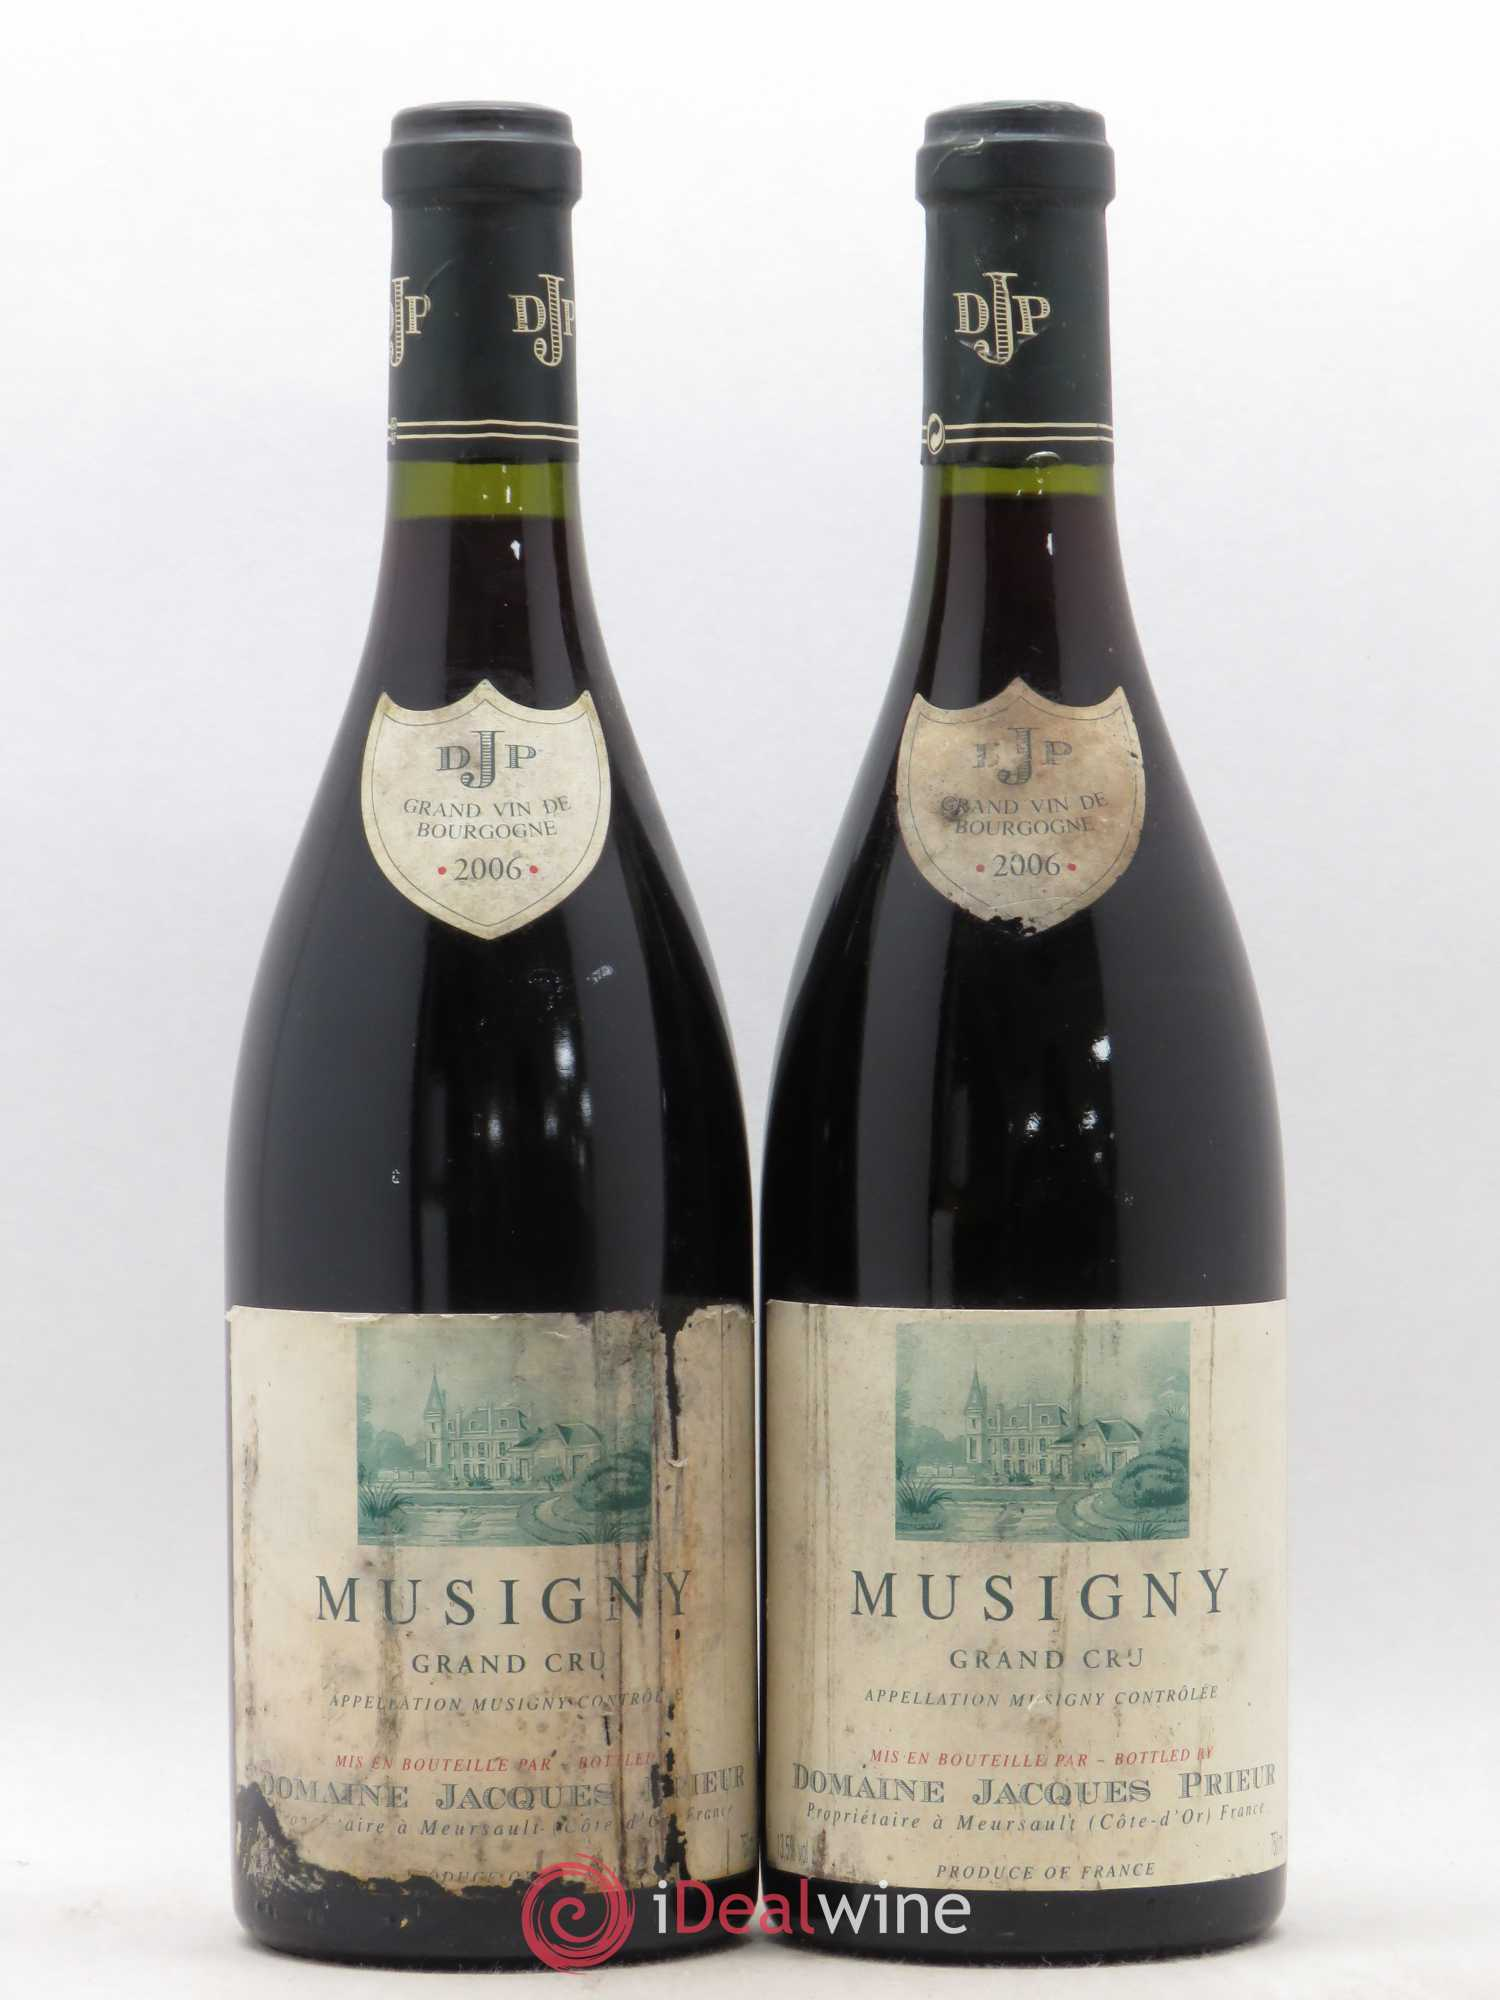 Musigny Grand Cru Jacques Prieur (Domaine)  2006 - Lot of 2 Bottles